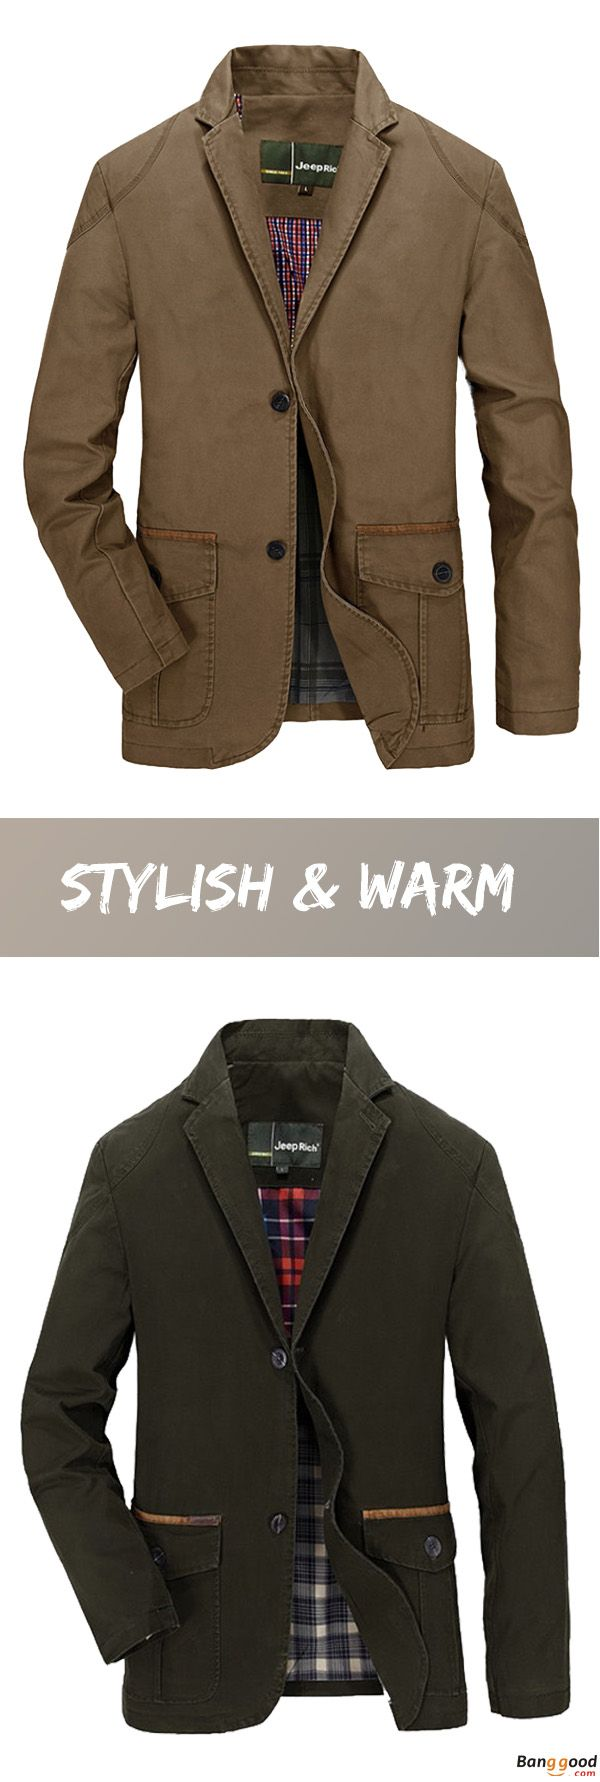 US$53.16 + Free Shipping. Men Jacket, Spring Jacket, Fall Jacket, Cotton Jacket, Blend Casual Jacket, Buttons Jacket, Coat Suit Outwear. US Size: S ~ 3XL. Color: Khaki, Olive. Stylish & Warm, Shop Now!